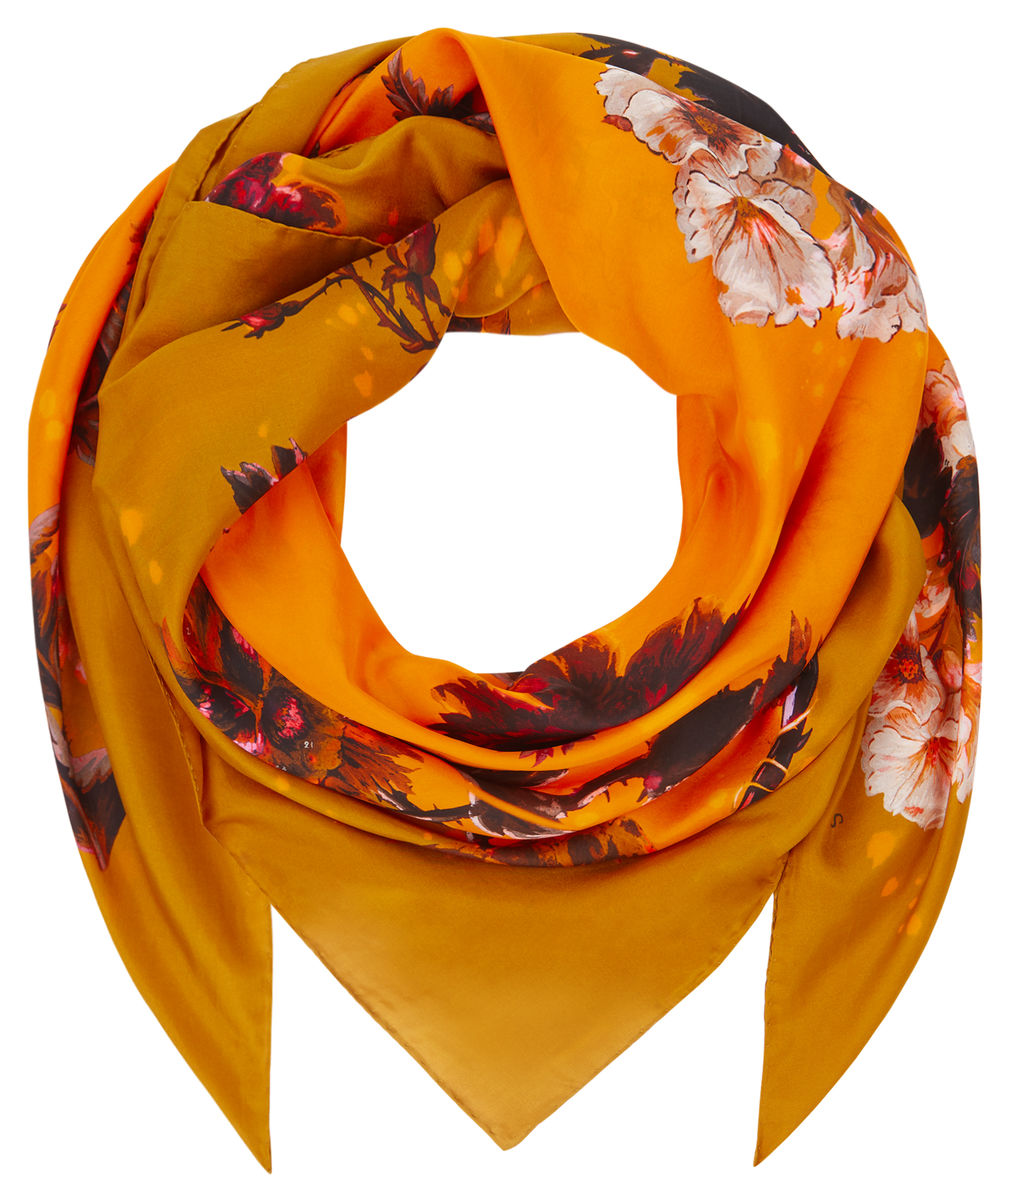 Medium scarf in Gothic Floral print (ochre) - product images  of